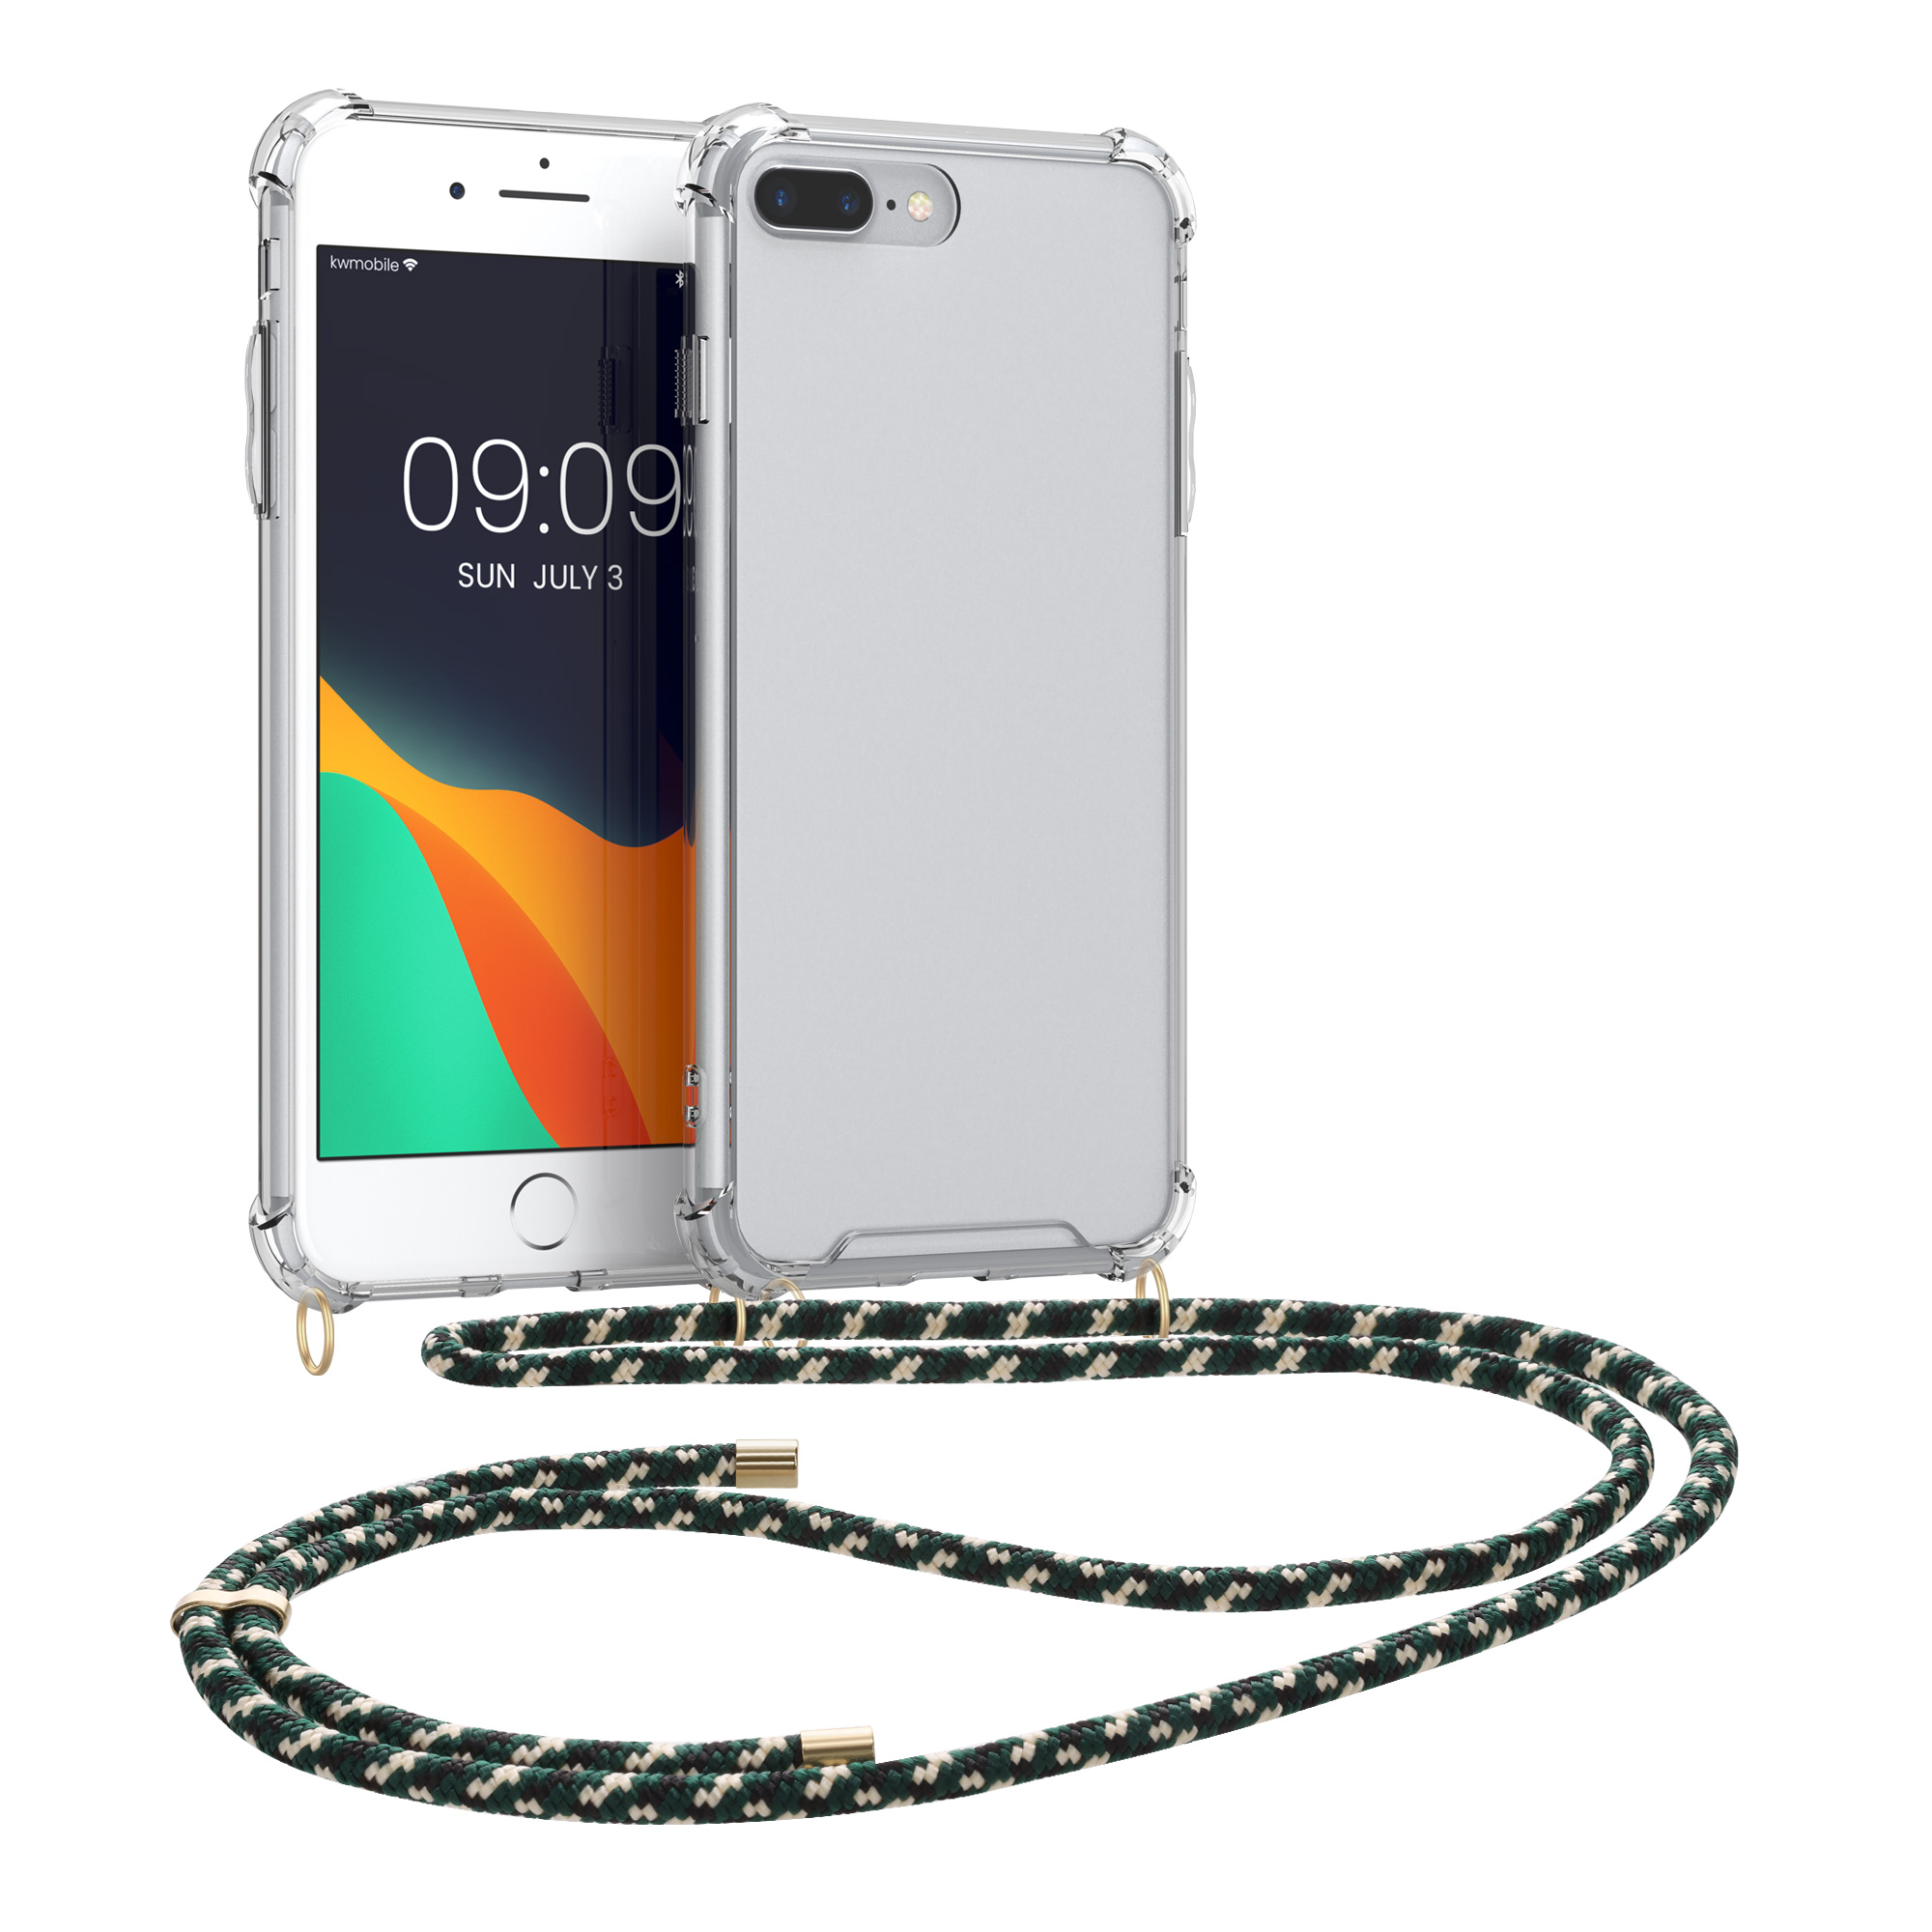 finest selection 31b84 6a284 Details about Crossbody Case for Apple iPhone 7 Plus 8 Plus with Neck  Lanyard Strap